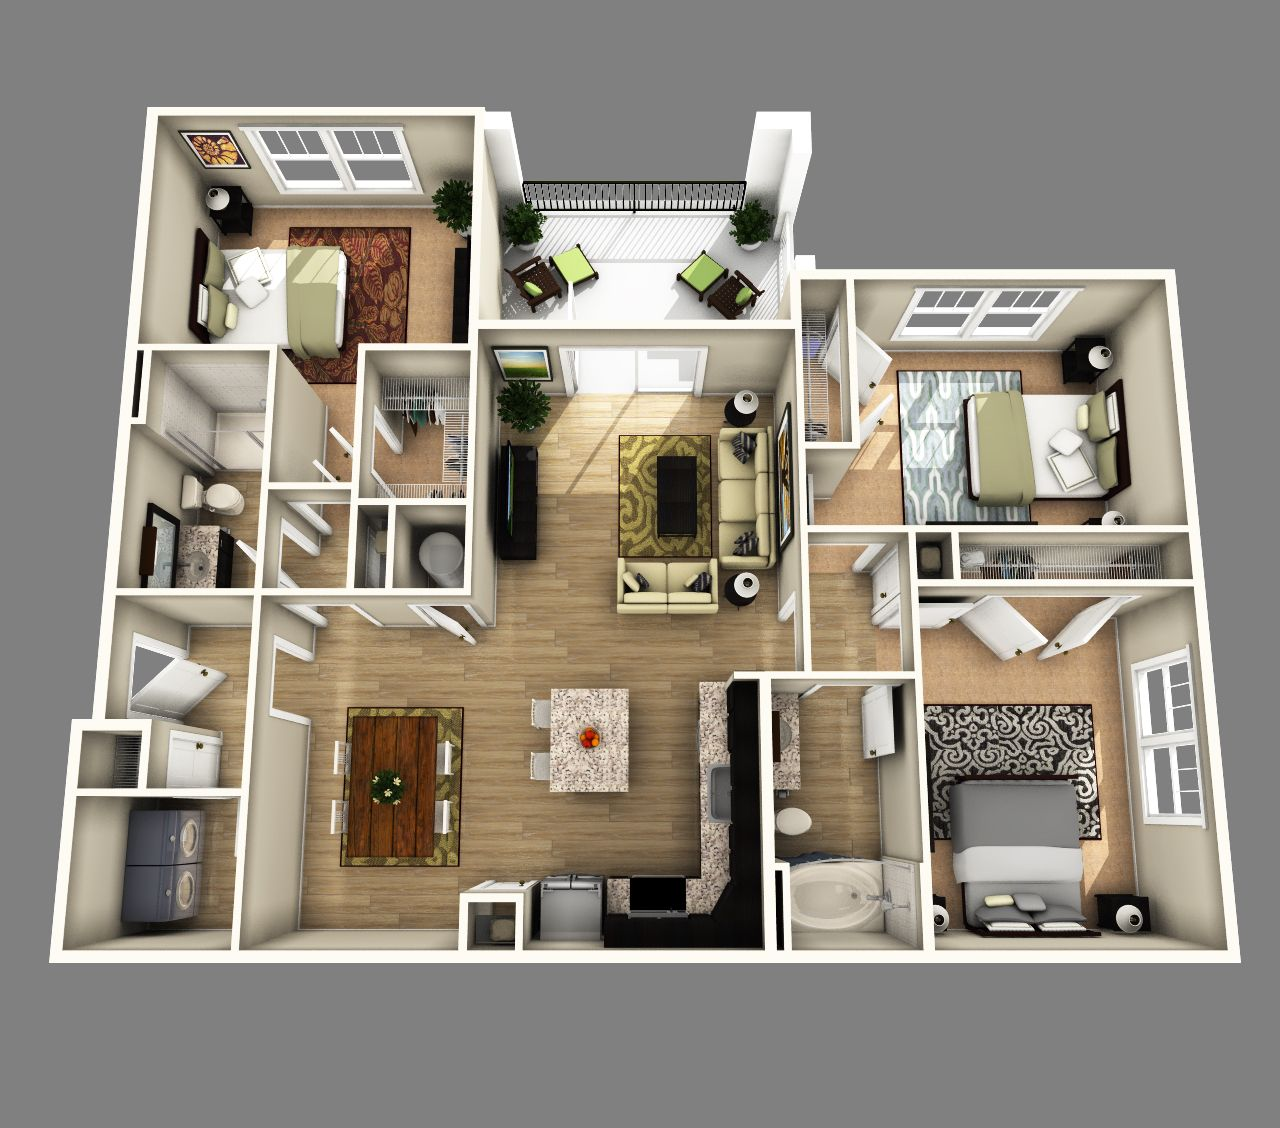 4 bedroom house floor plans 3d - 3d Open Floor Plan 3 Bedroom 2 Bathroom Google Search